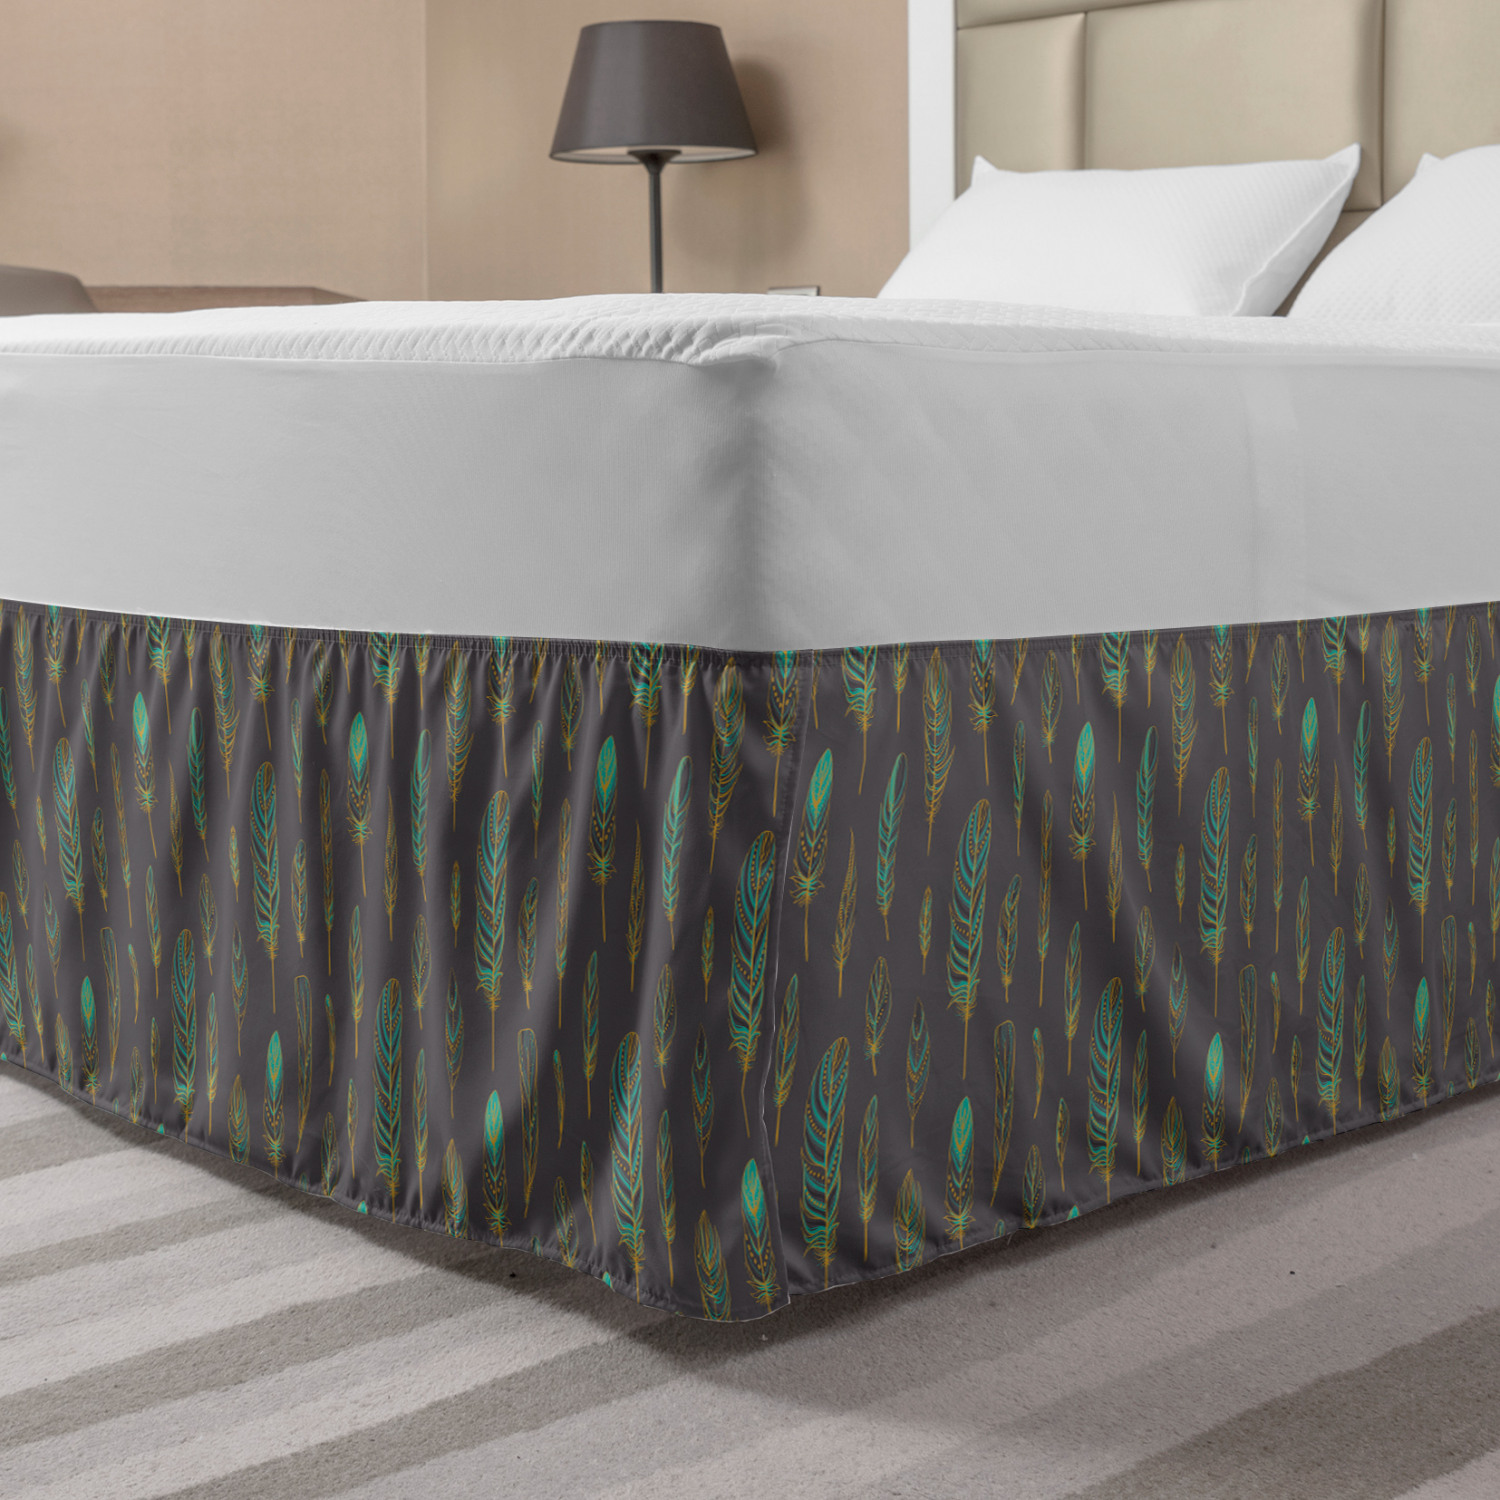 Feather Bed Skirt Boho Style Pattern Sketch Elastic Bedskirt Dust Ruffle Wrap Around For Bedding Decor 4 Sizes Purple Grey Turquoise By Ambesonne Walmart Com Walmart Com